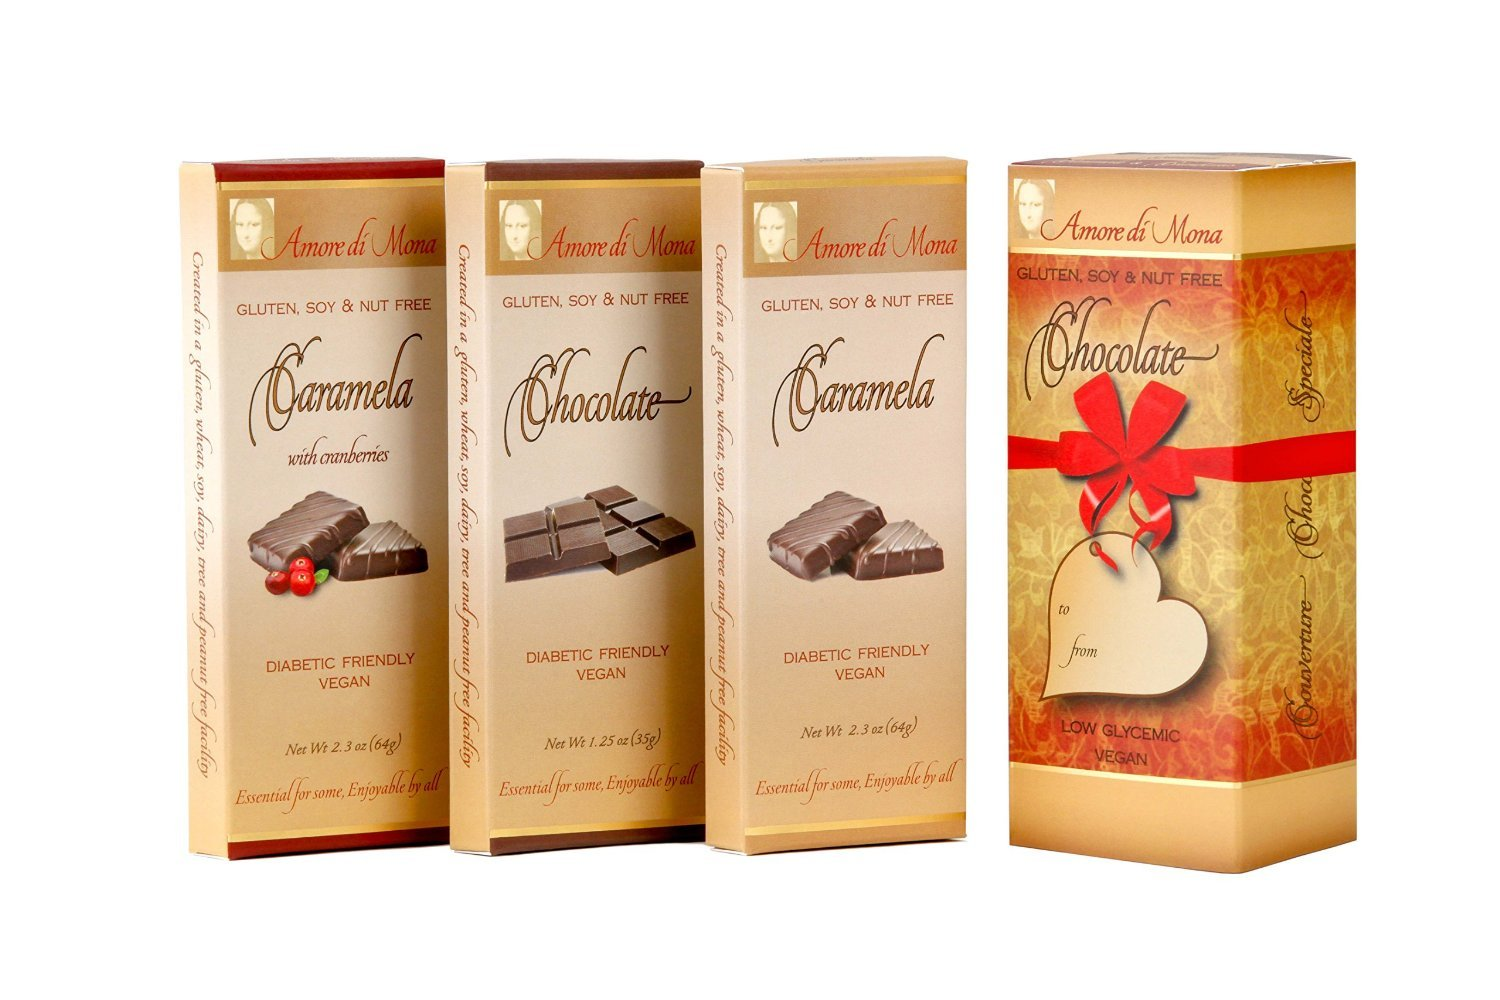 Amore Collection-Amore di Mona Luxury Chocolate Box. No Gluten Peanuts,Tree Nuts, Milk, Sesame or Soy. Vegan, All-Natural, Non-GMO, Low Glycemic